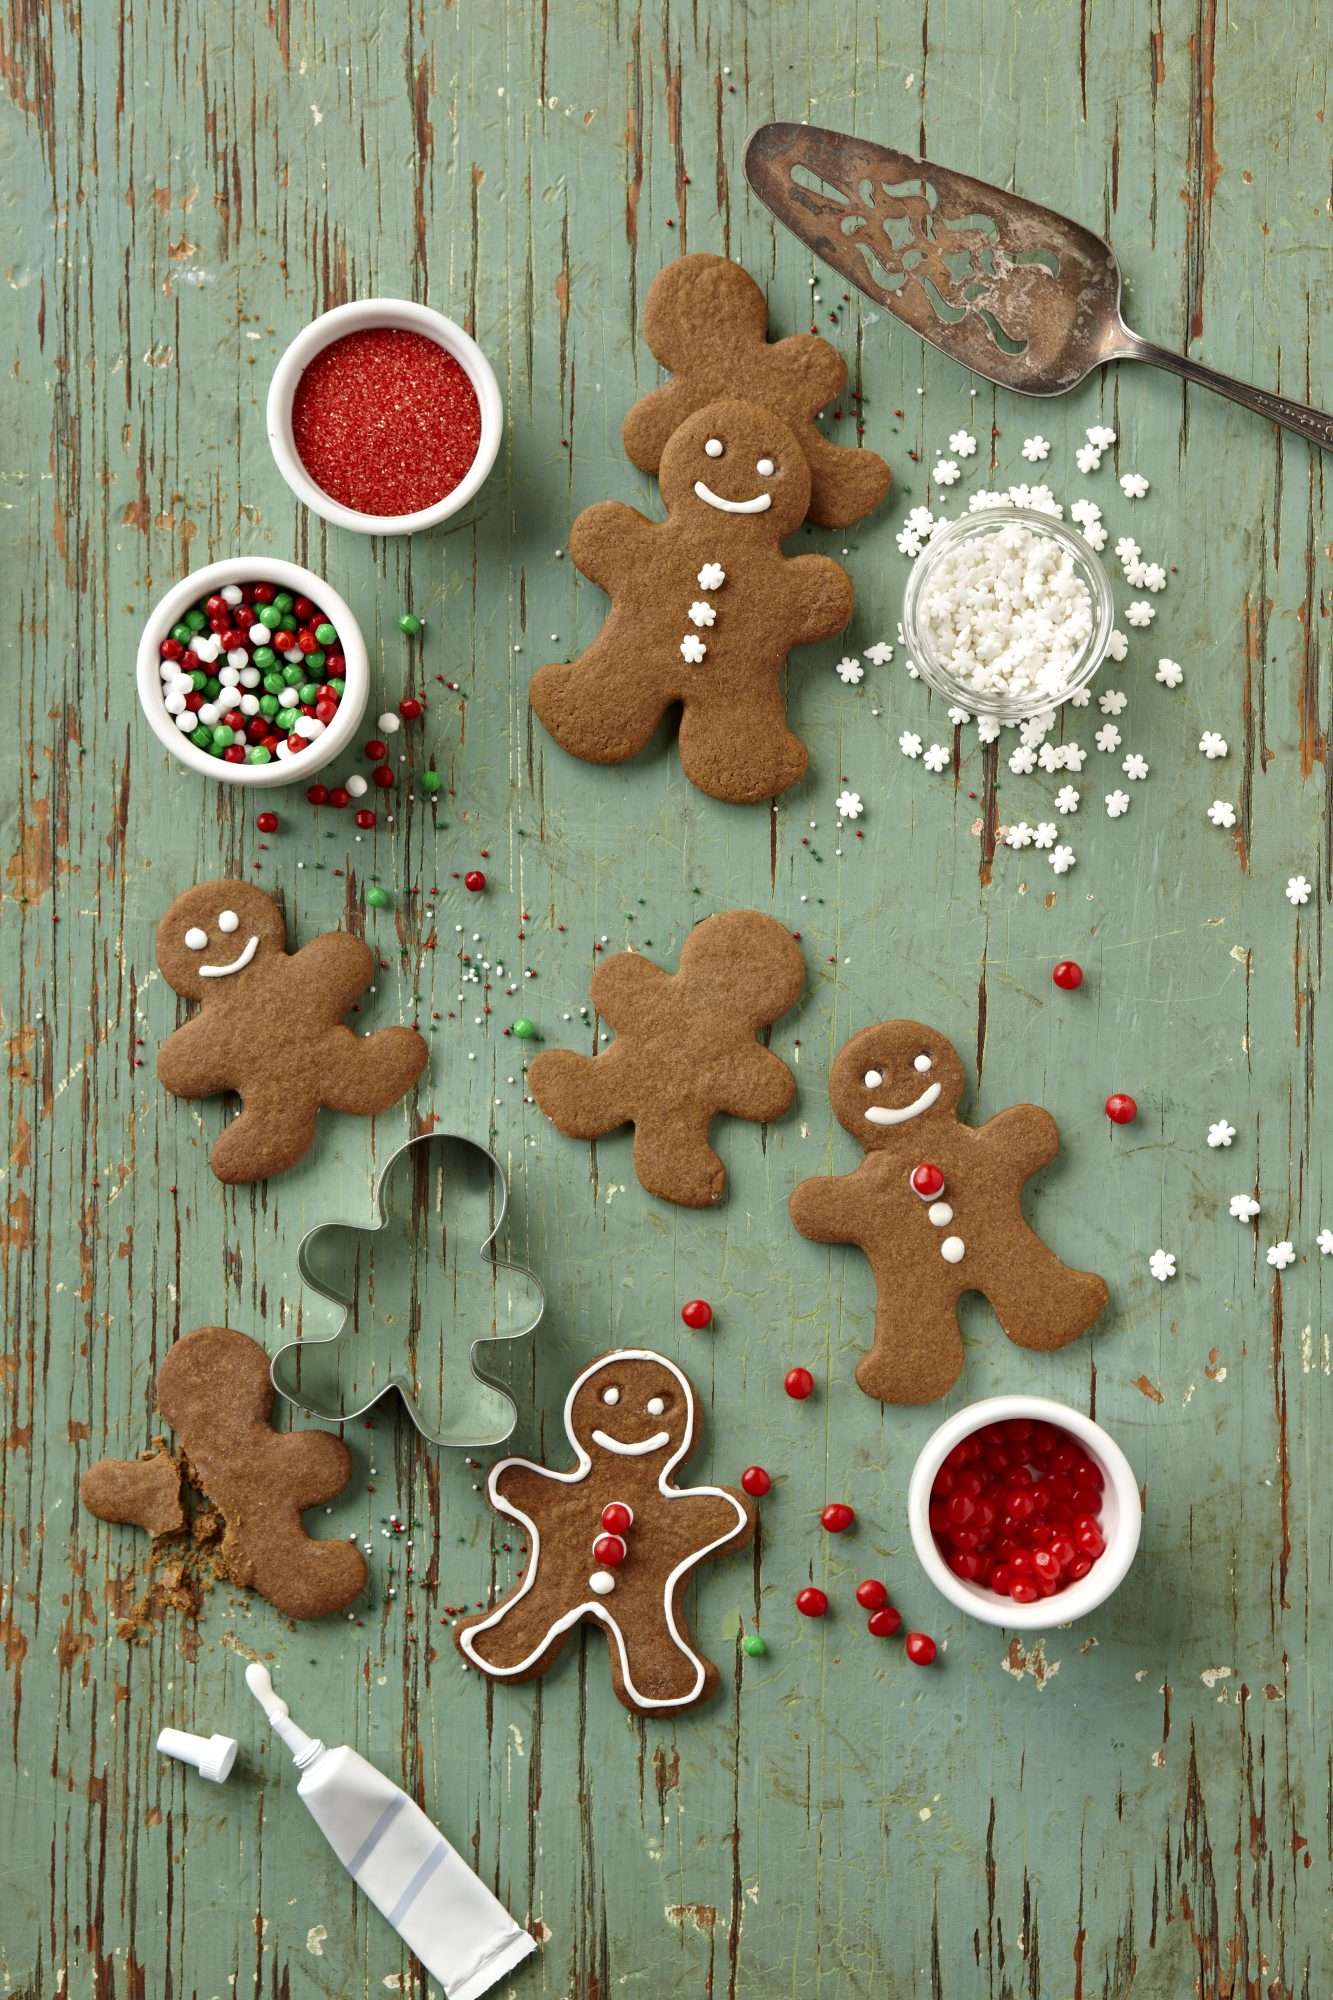 Decorating Gingerbread Men Cookies